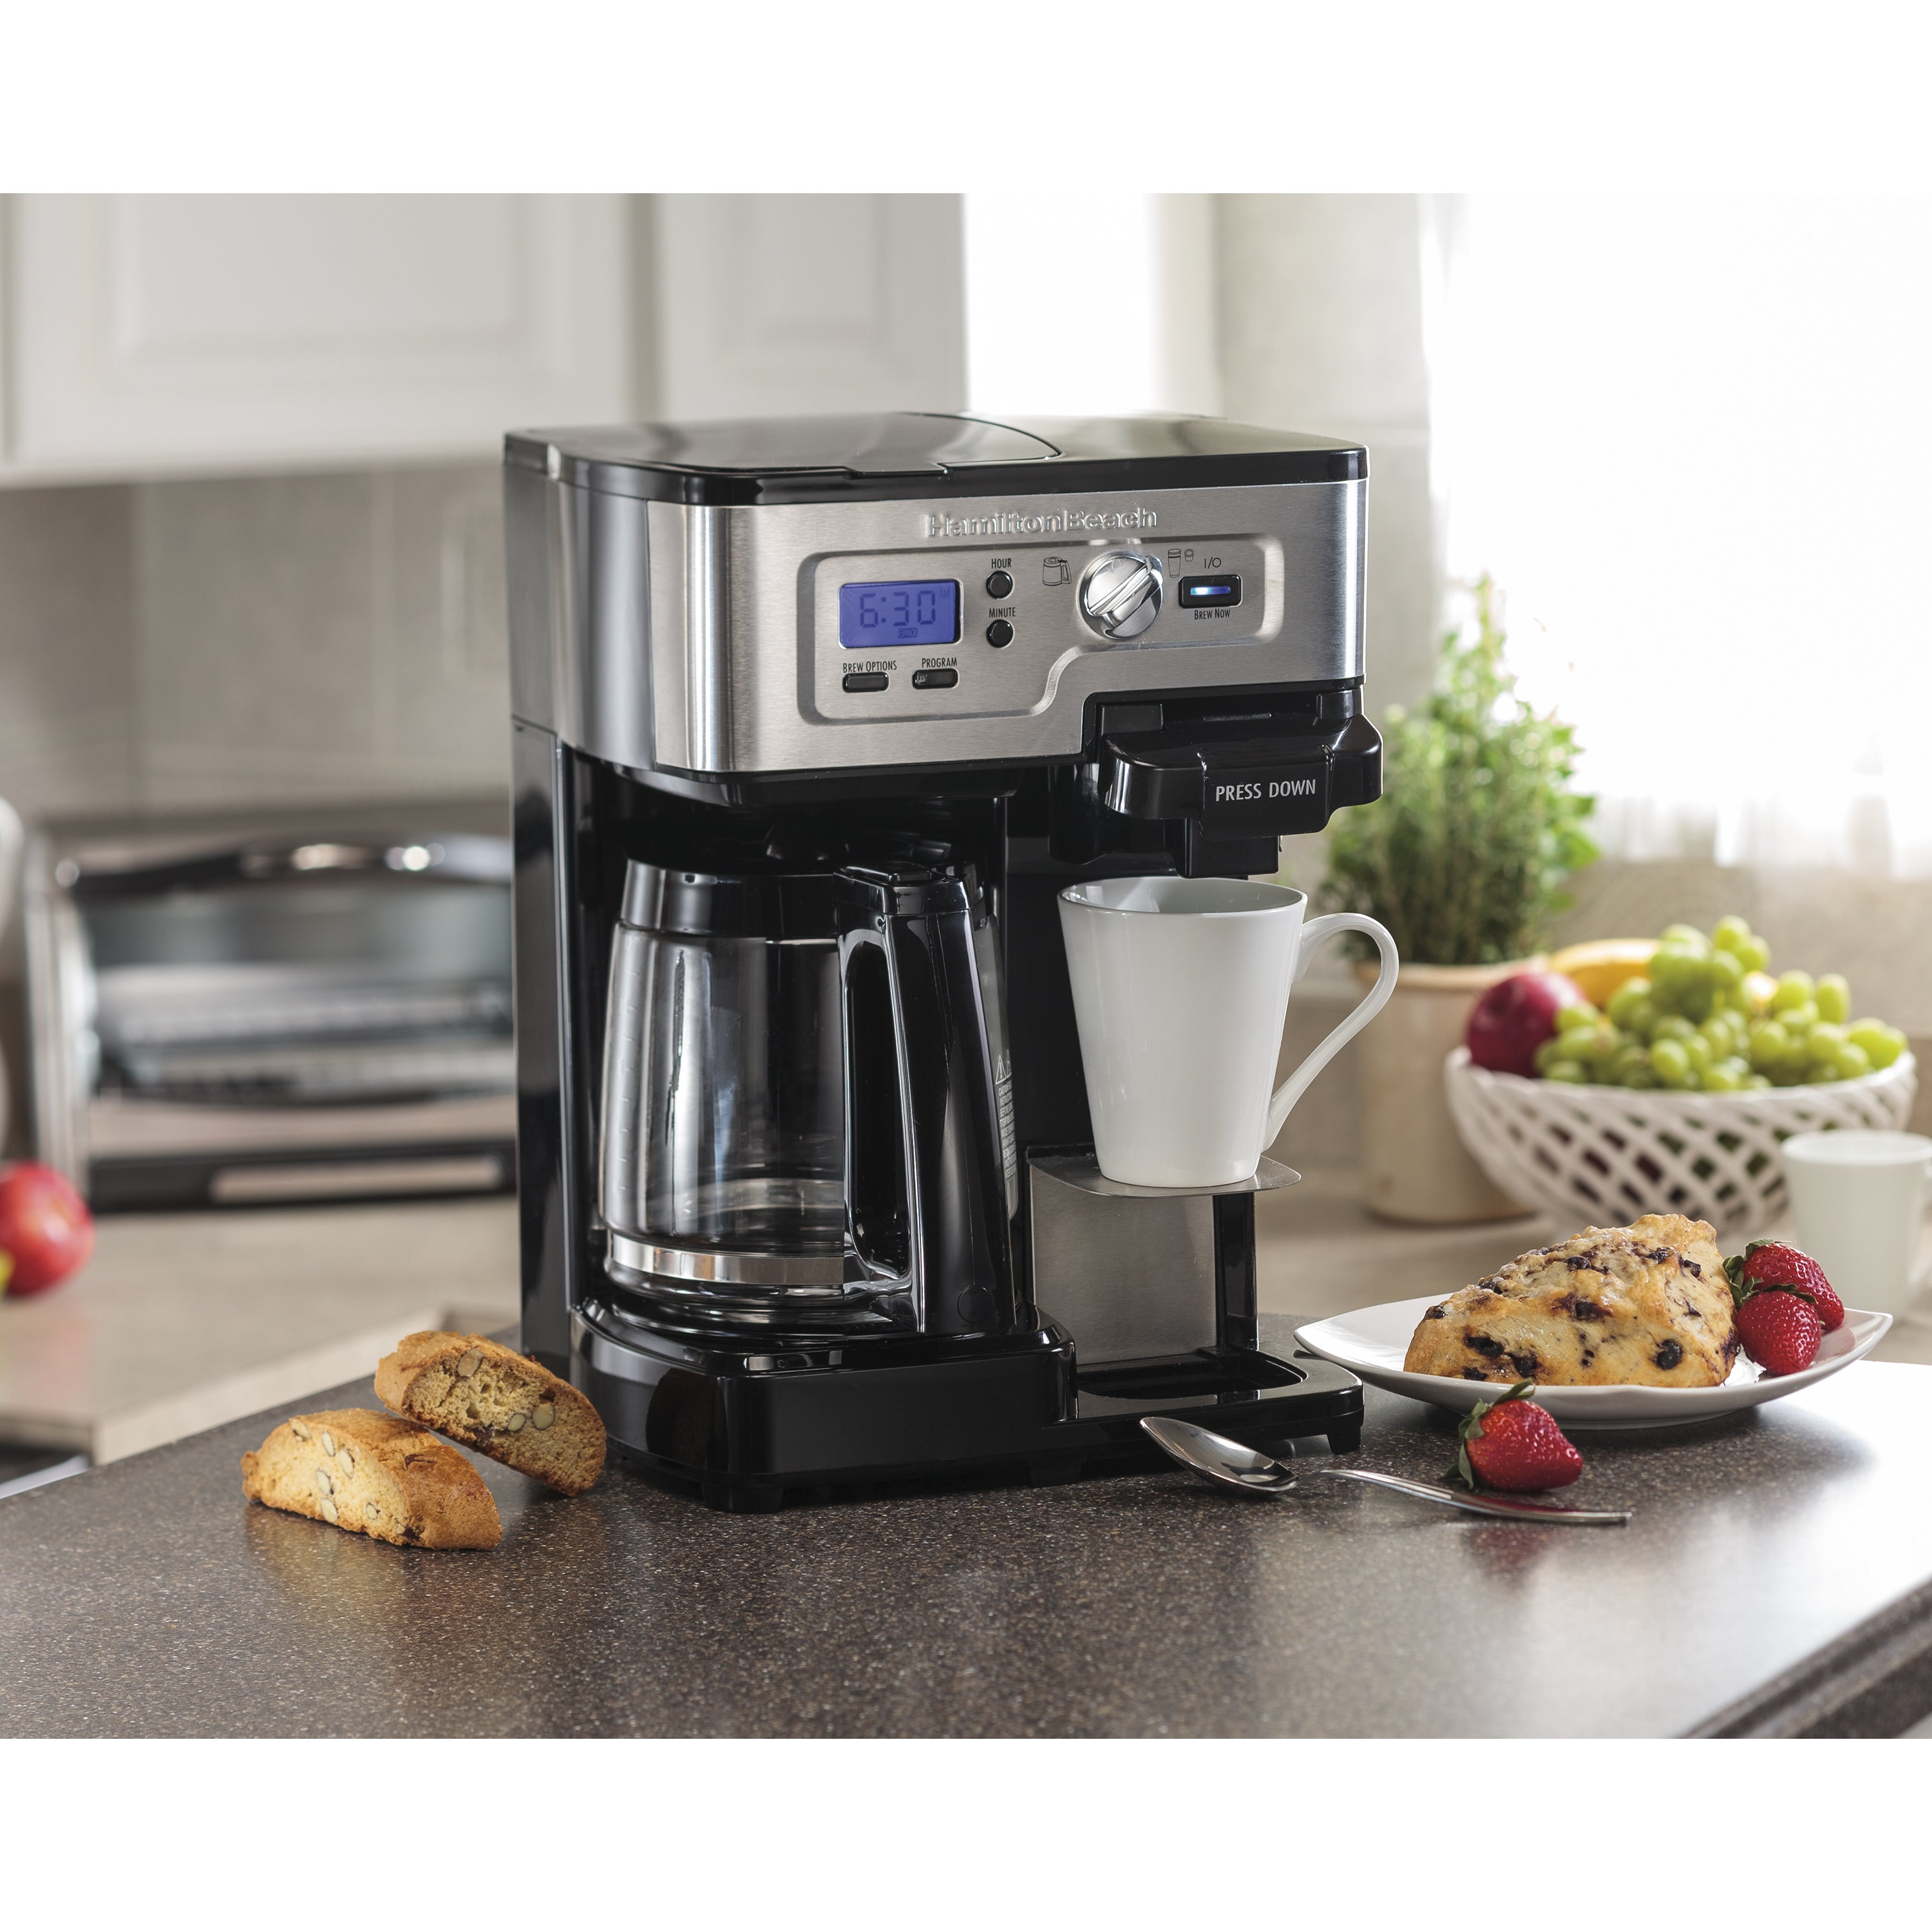 Hamilton Beach Black Programable 2-Way Brewer Coffee Make...